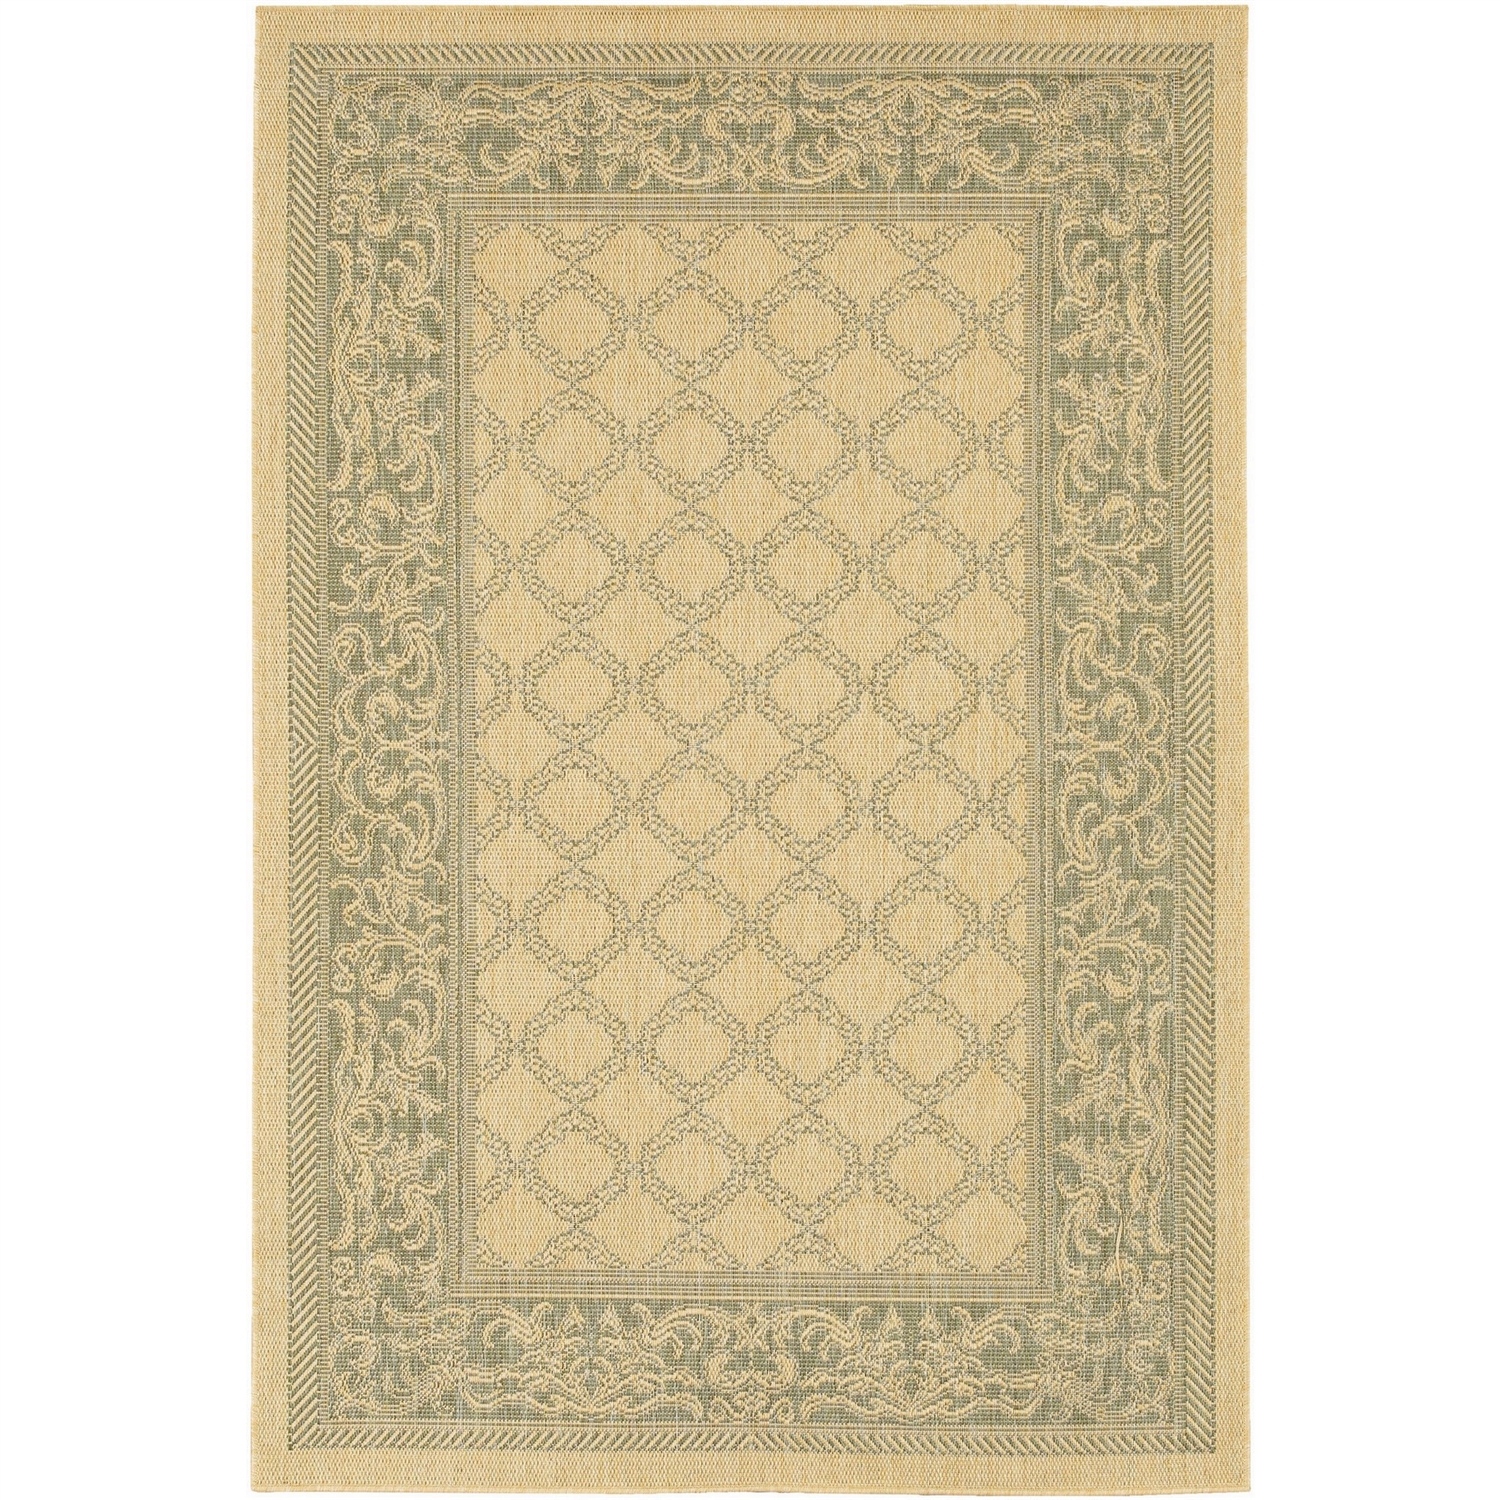 3'9 x 5'5 Trellis Area Rug with Natural Garden Lattice Pattern, CRG395156 : This 3'9 x 5'5 Trellis Area Rug with Natural Garden Lattice Pattern would be a great addition to your home. It is made of synthetic materials and is made in Belgium. 100% Recyclable; Construction: Machine made; Color: Natural / Green; Construction: Machine Made; Technique: Machine Woven; Primary Pattern: Geometric; Oriental; Primary Color: Natural; Border Material: Synthetic; Border Color: Natural; Material: Synthetic; Material Details: Polypropylene. Reversible: No; Rug Pad Needed: Yes; Water Resistant: Yes; Mildew Resistant: Yes; Eco-Friendly: No; Outdoor Use: Yes; Country of Manufacture: Belgium; Product Warranty: 1 year limited warranty.